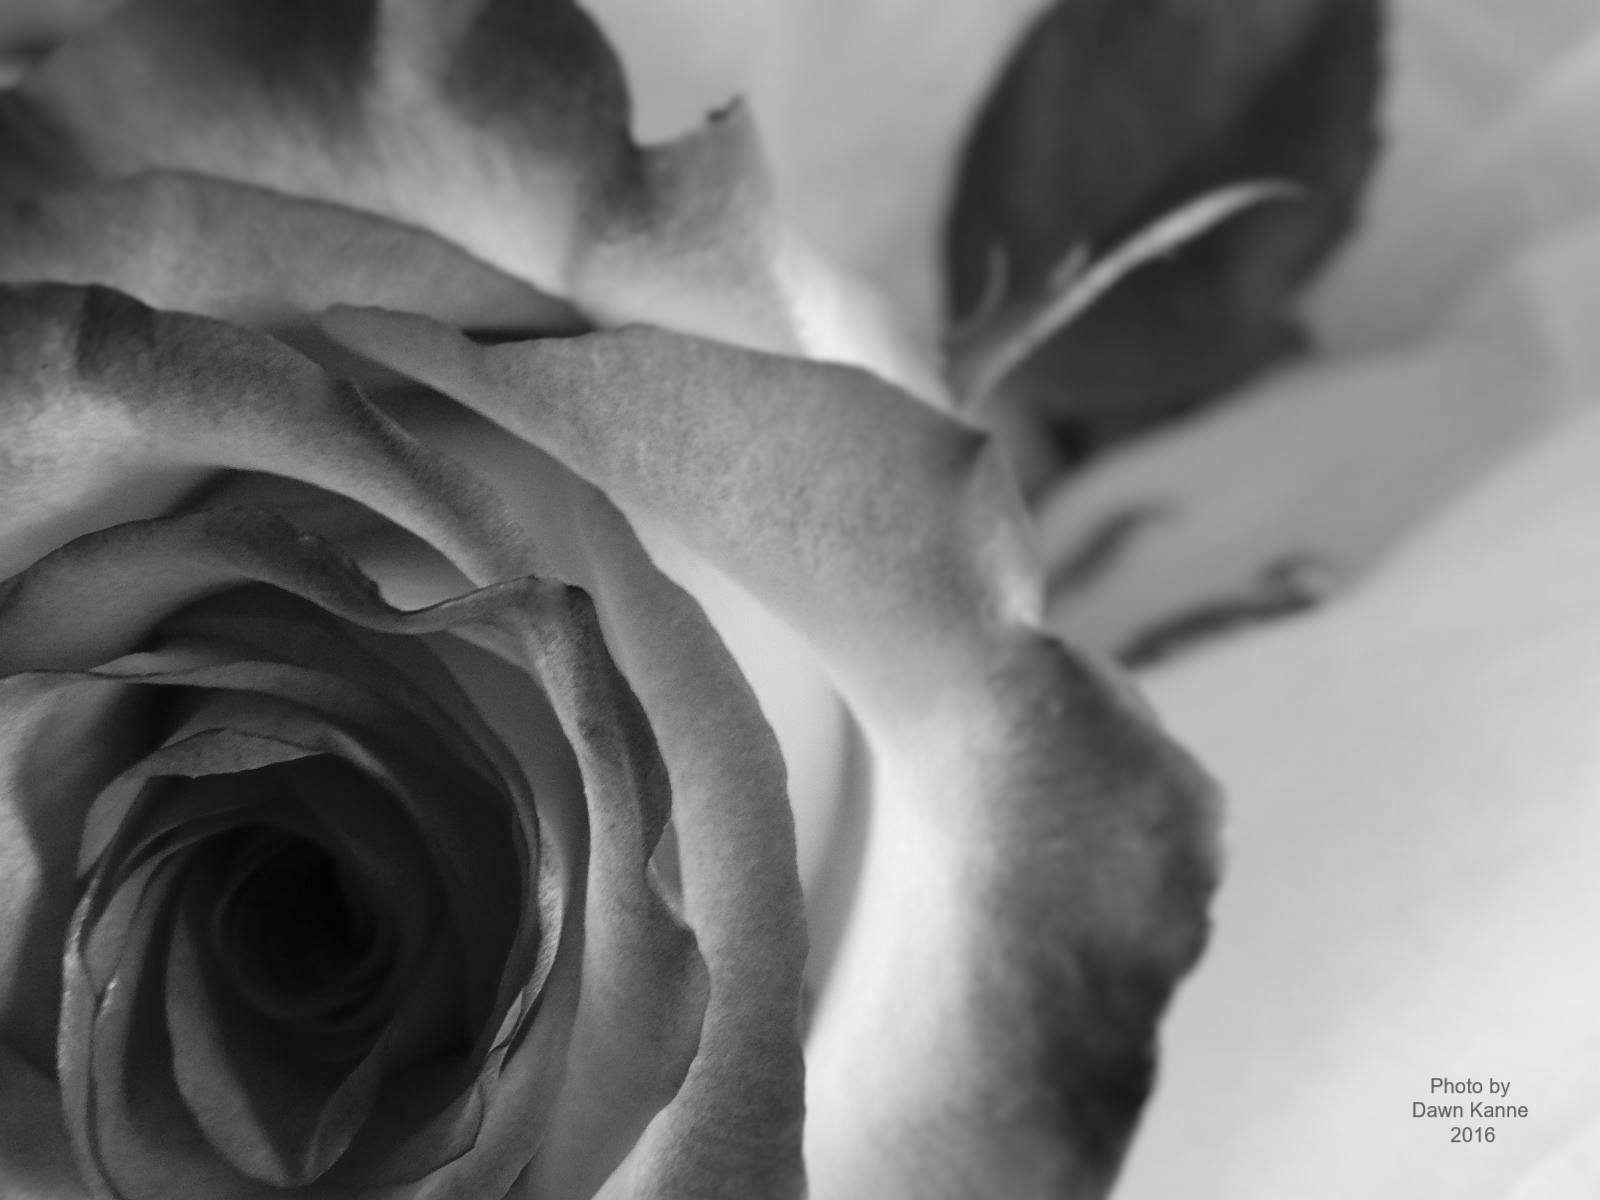 Shades of gray by Dawn Kanne